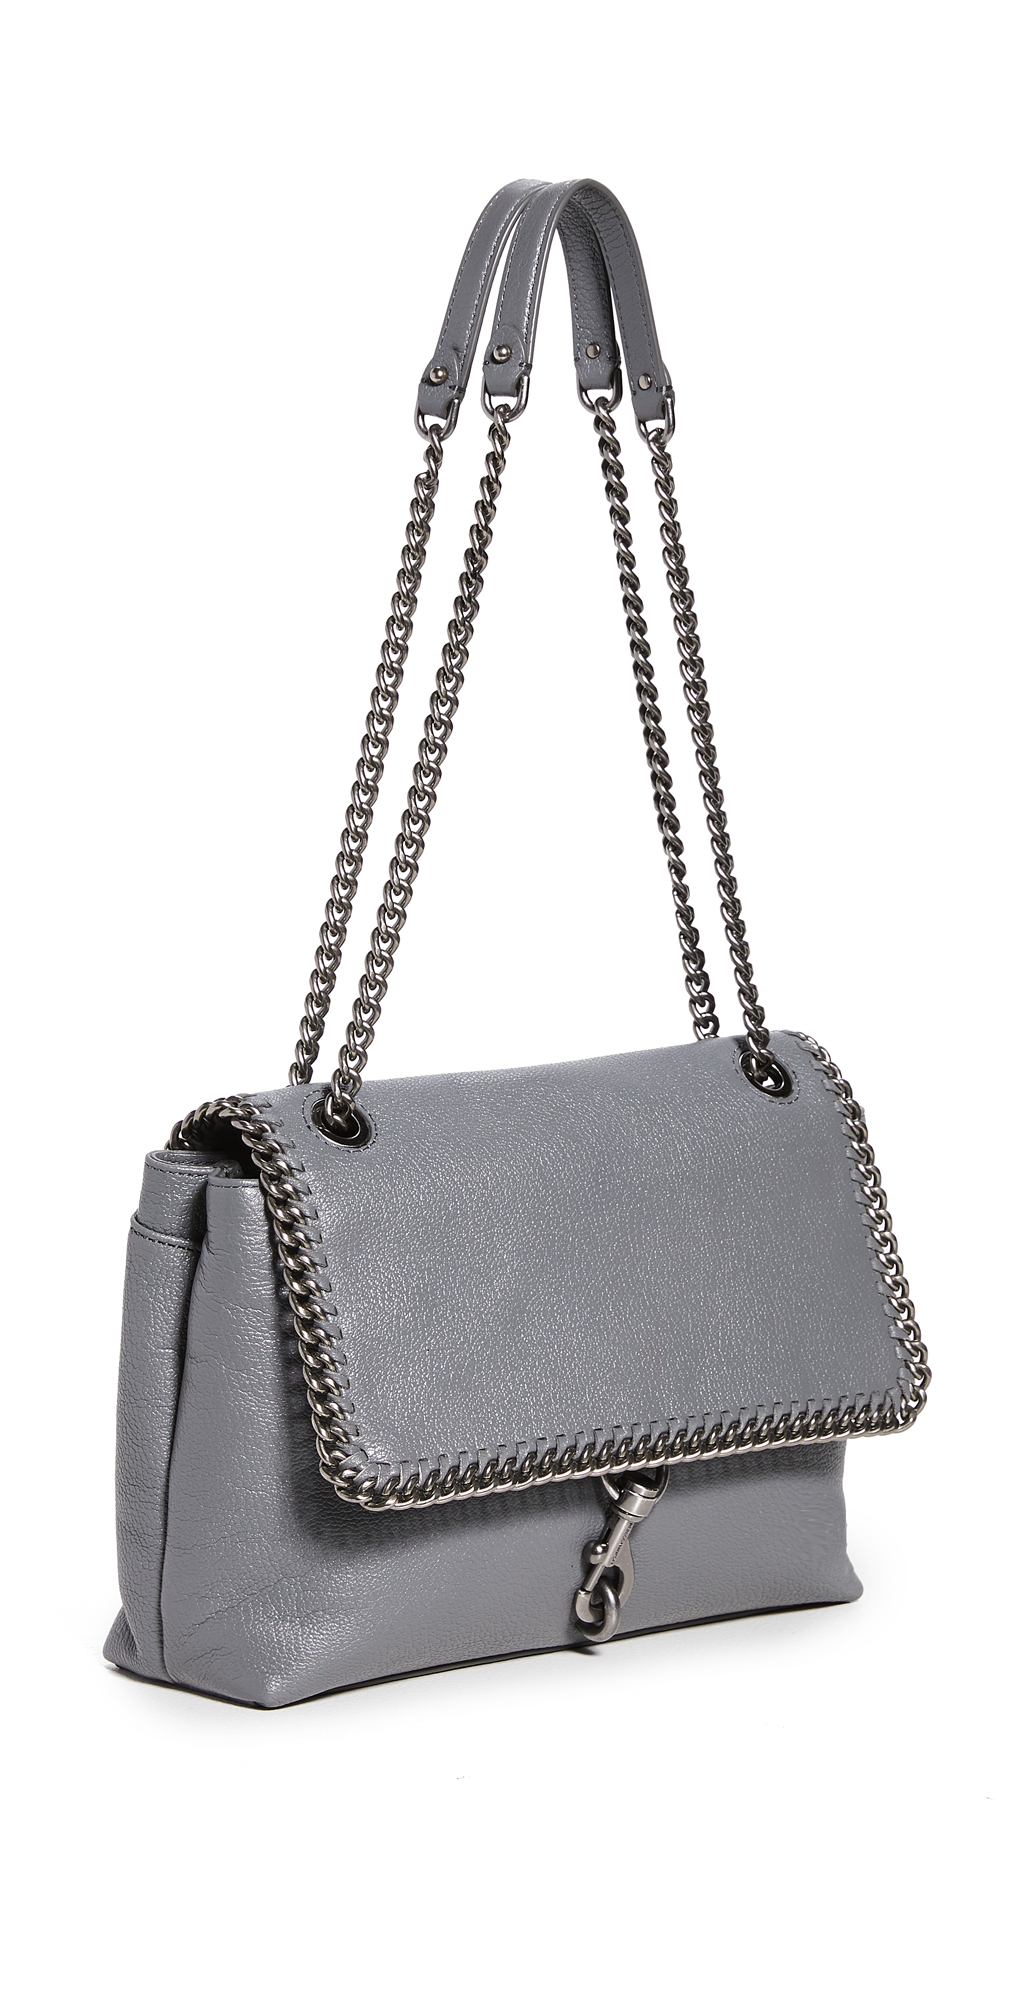 Rebecca Minkoff Edie Shoulder Bag with Woven Chain